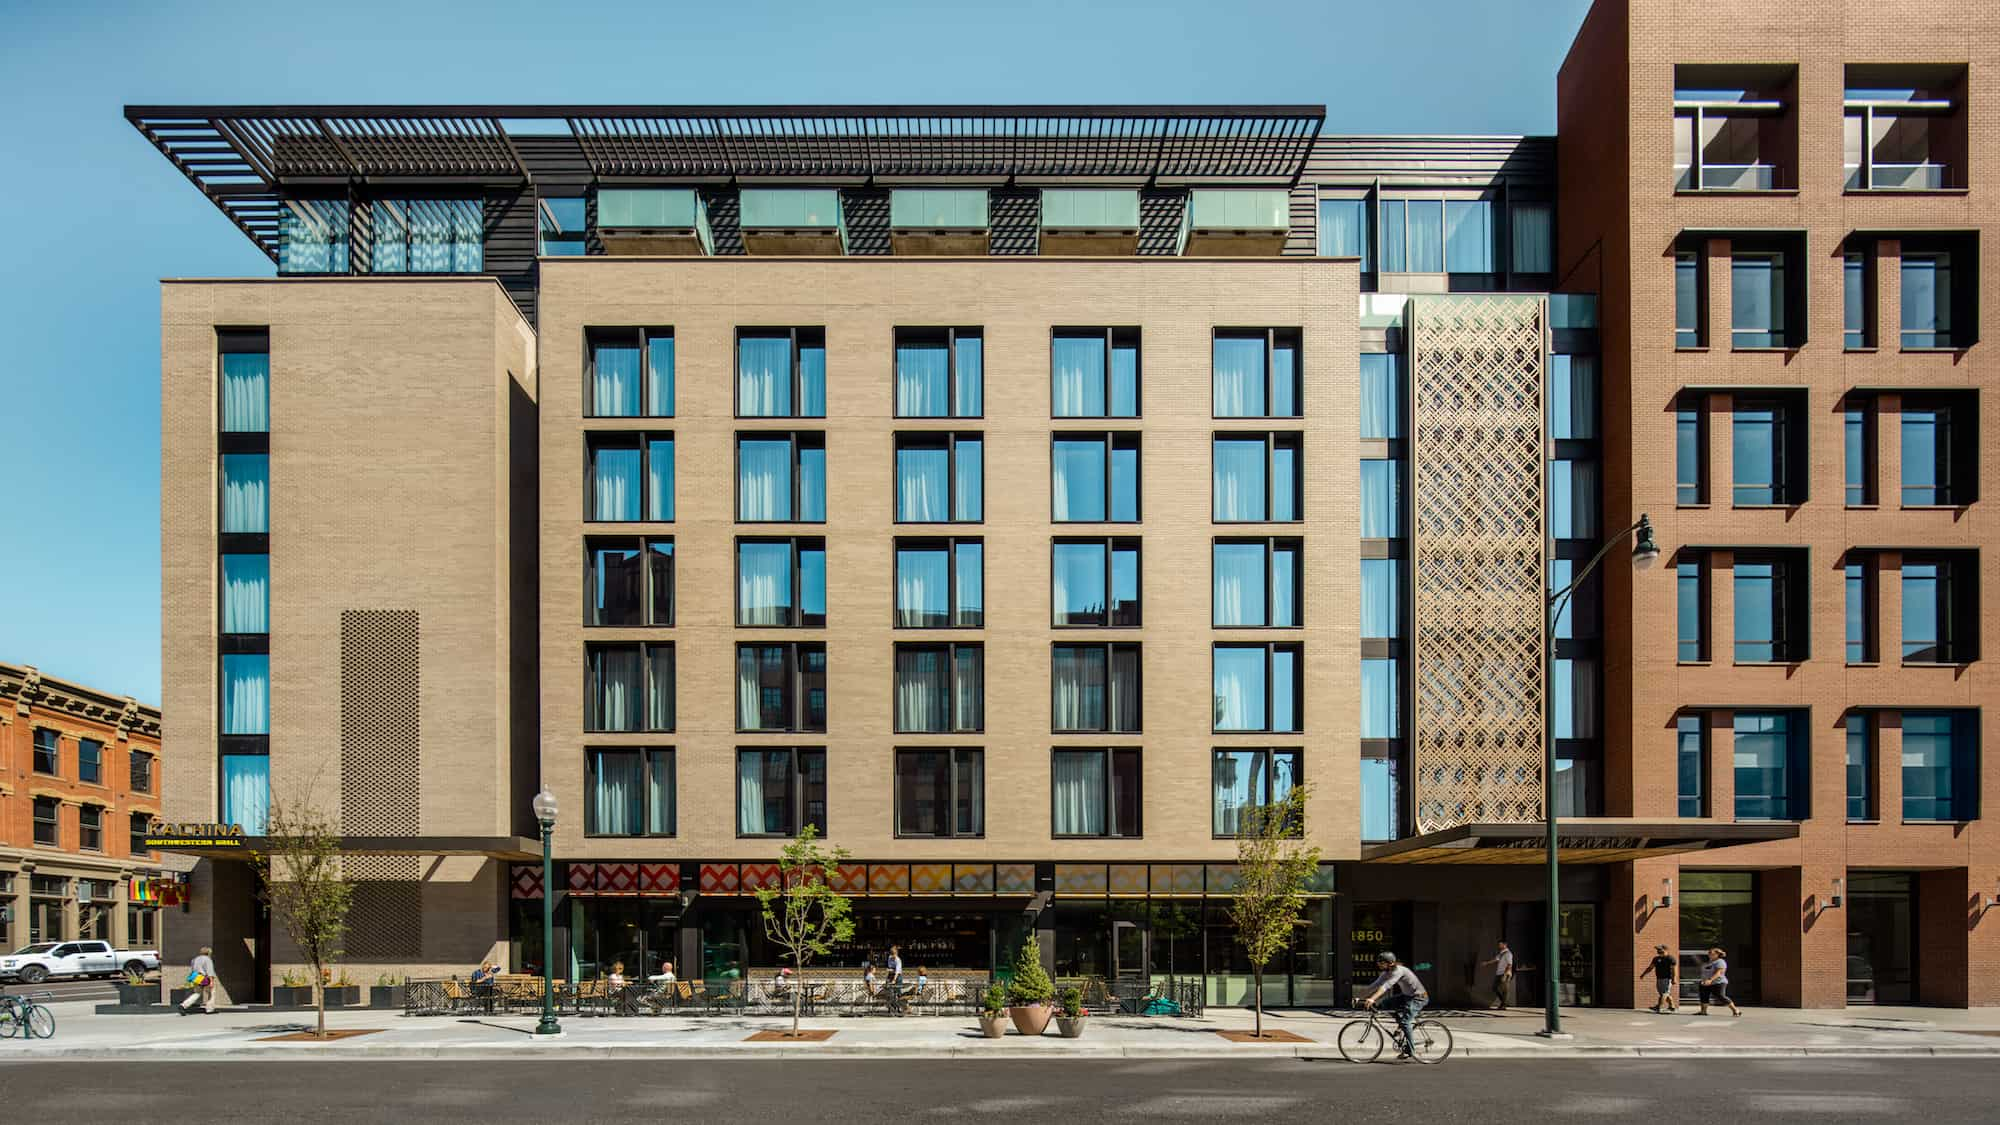 The anchor of the Dairy Block redevelopment, the Maven Hotel was created to service as a community hub, partnering with local tenants and acting as the center of a new Denver attraction.